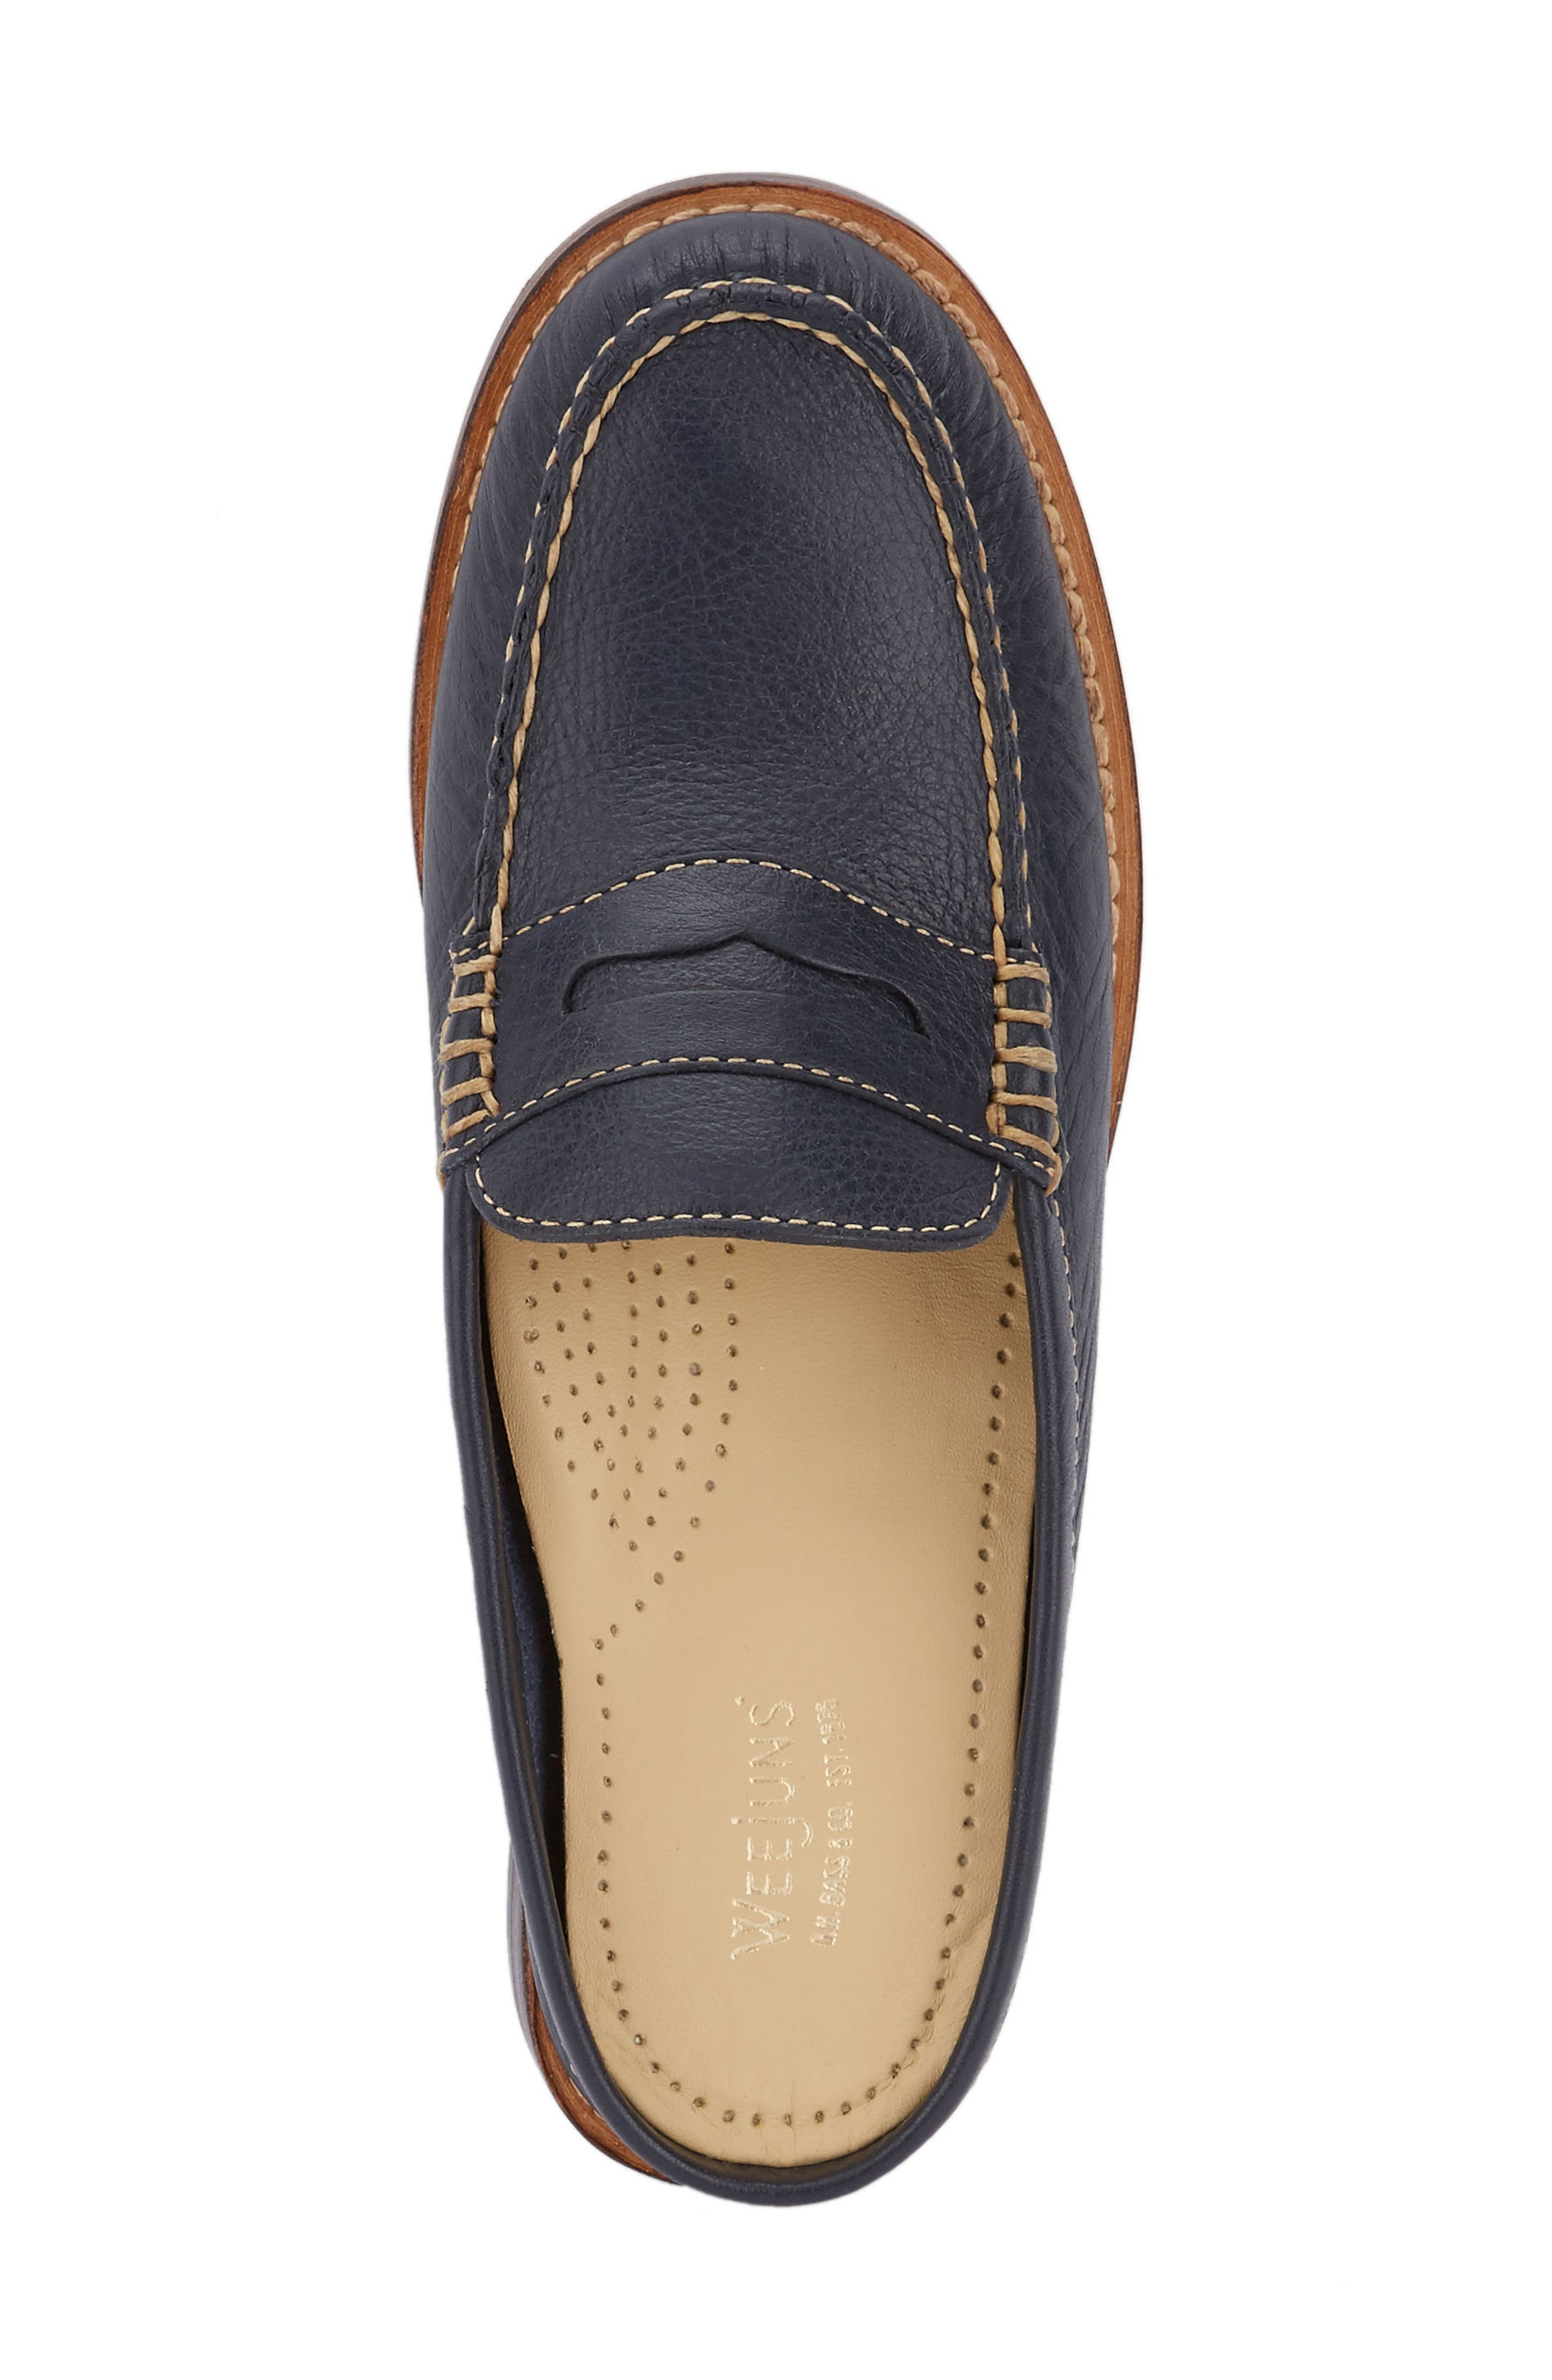 Wynn Loafer Mule,                             Alternate thumbnail 87, color,